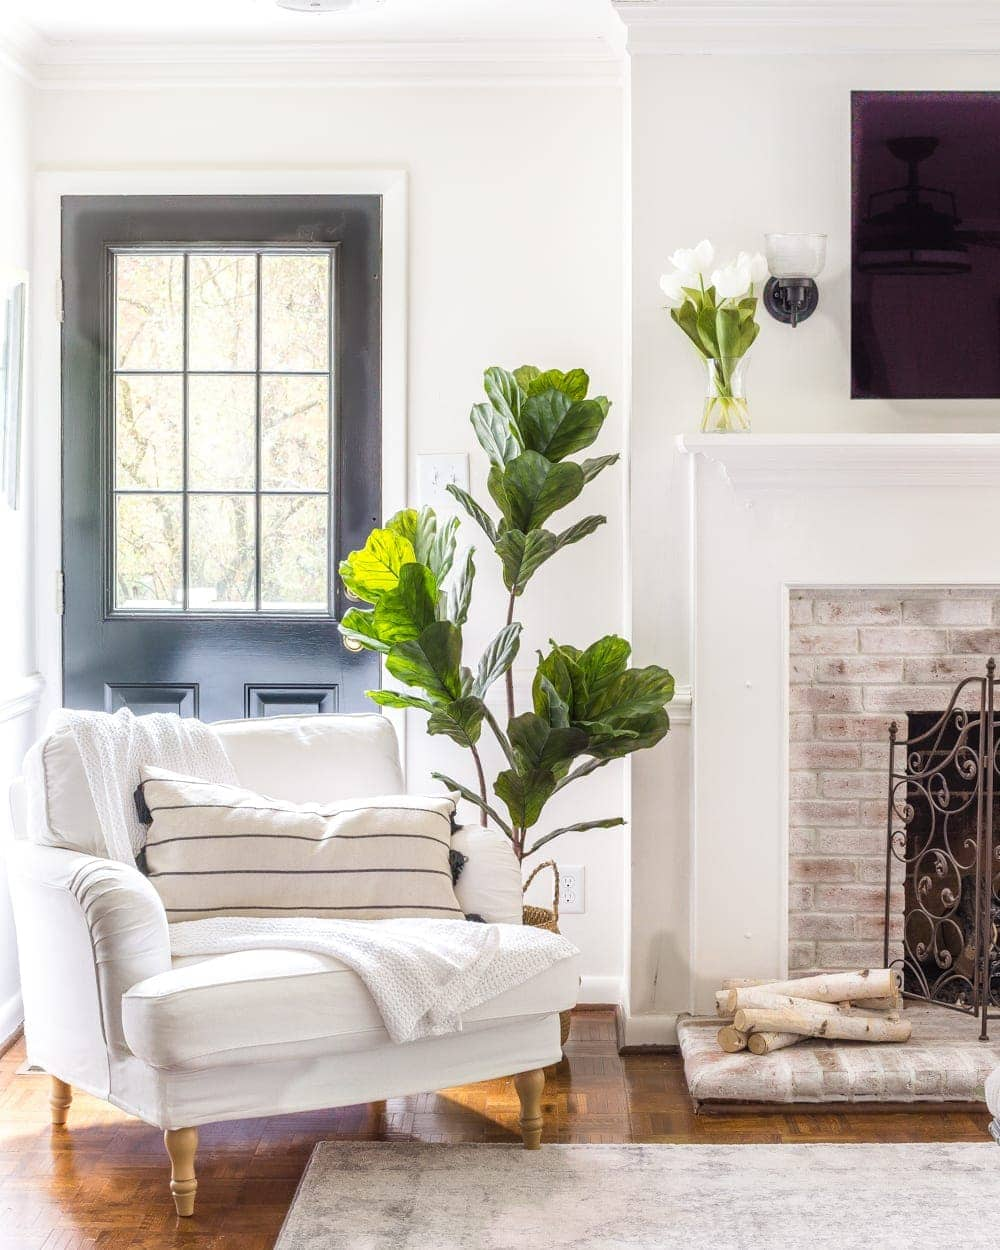 Simple Spring Home Tour | Neutral living room decorated with artificial fiddle leaf fig and IKEA furniture